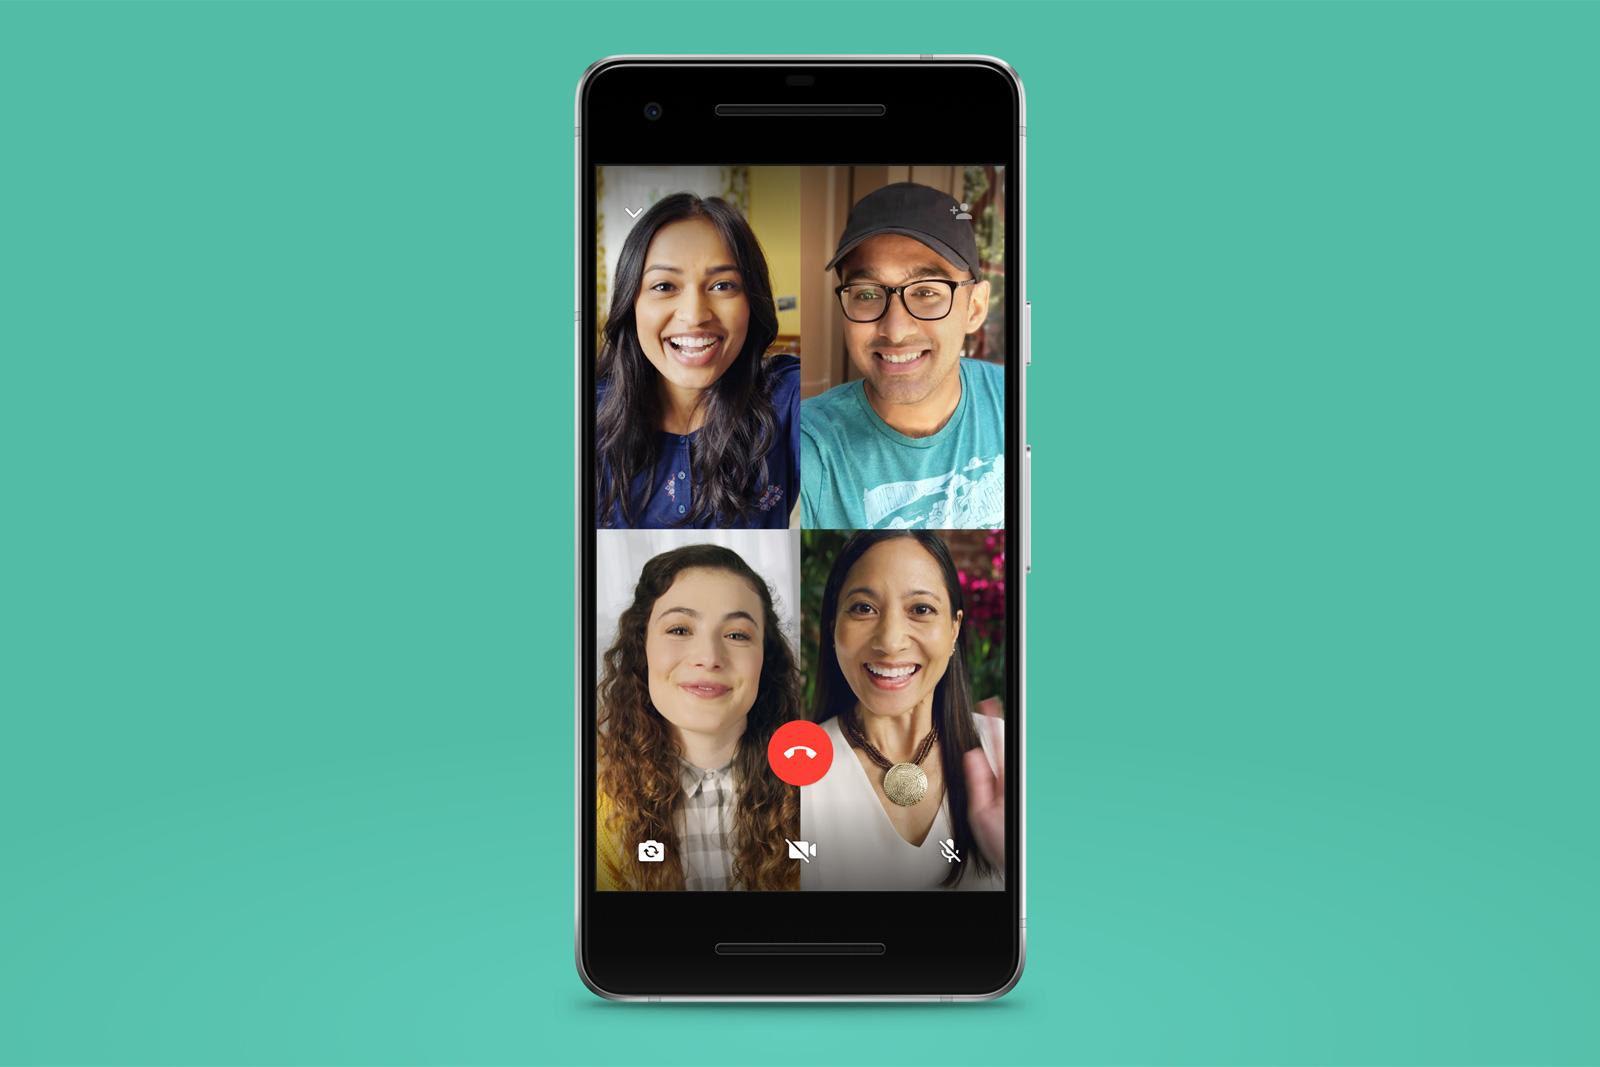 WhatsApp launches four-person group video calling | Engadget